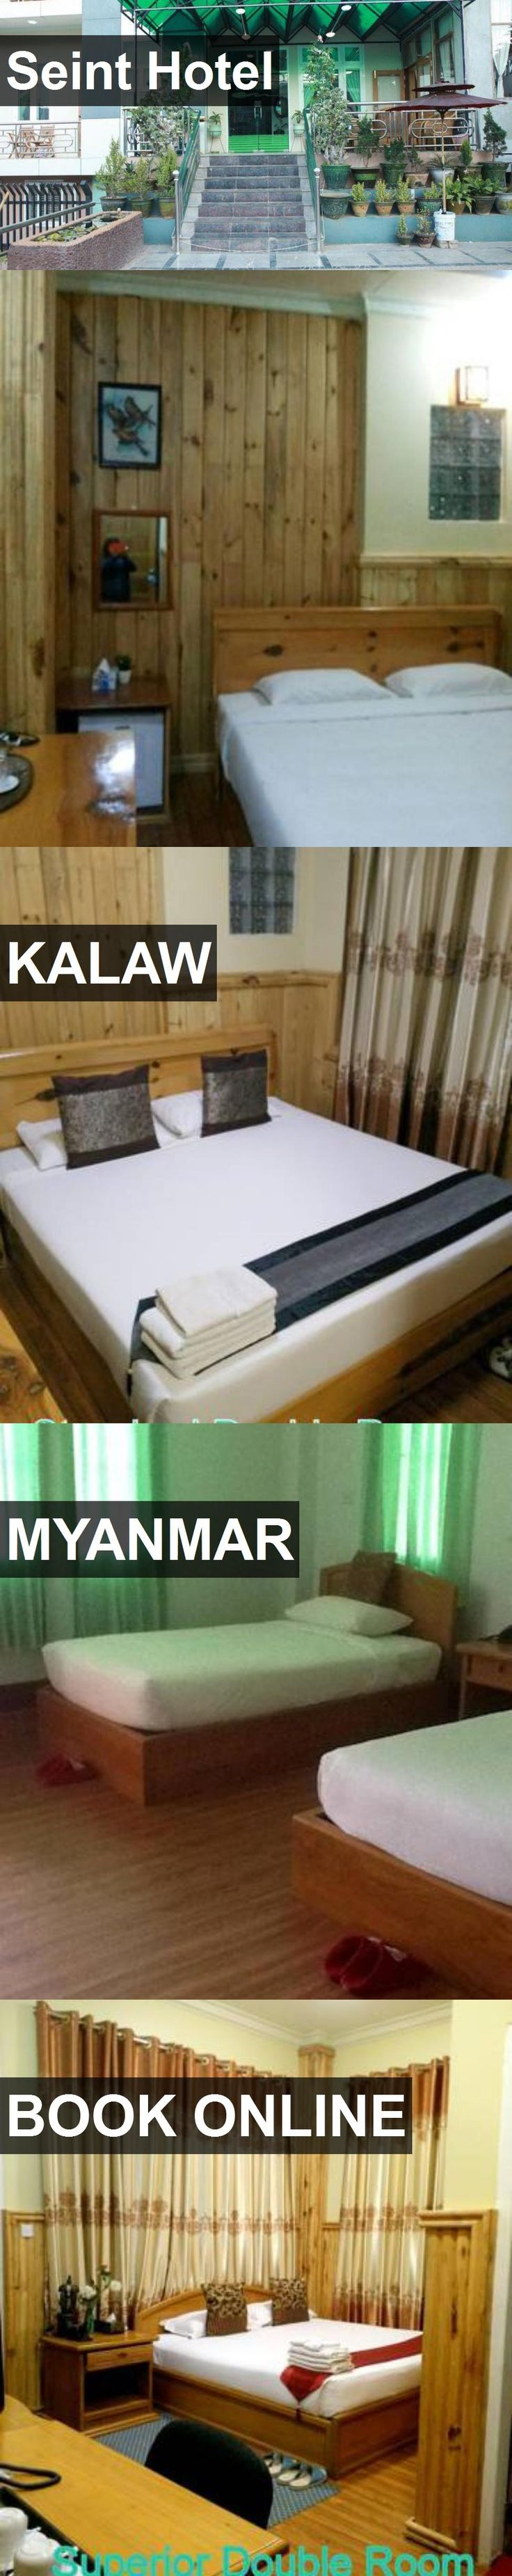 Seint Hotel in Kalaw, Myanmar. For more information, photos, reviews and best prices please follow the link. #Myanmar #Kalaw #travel #vacation #hotel